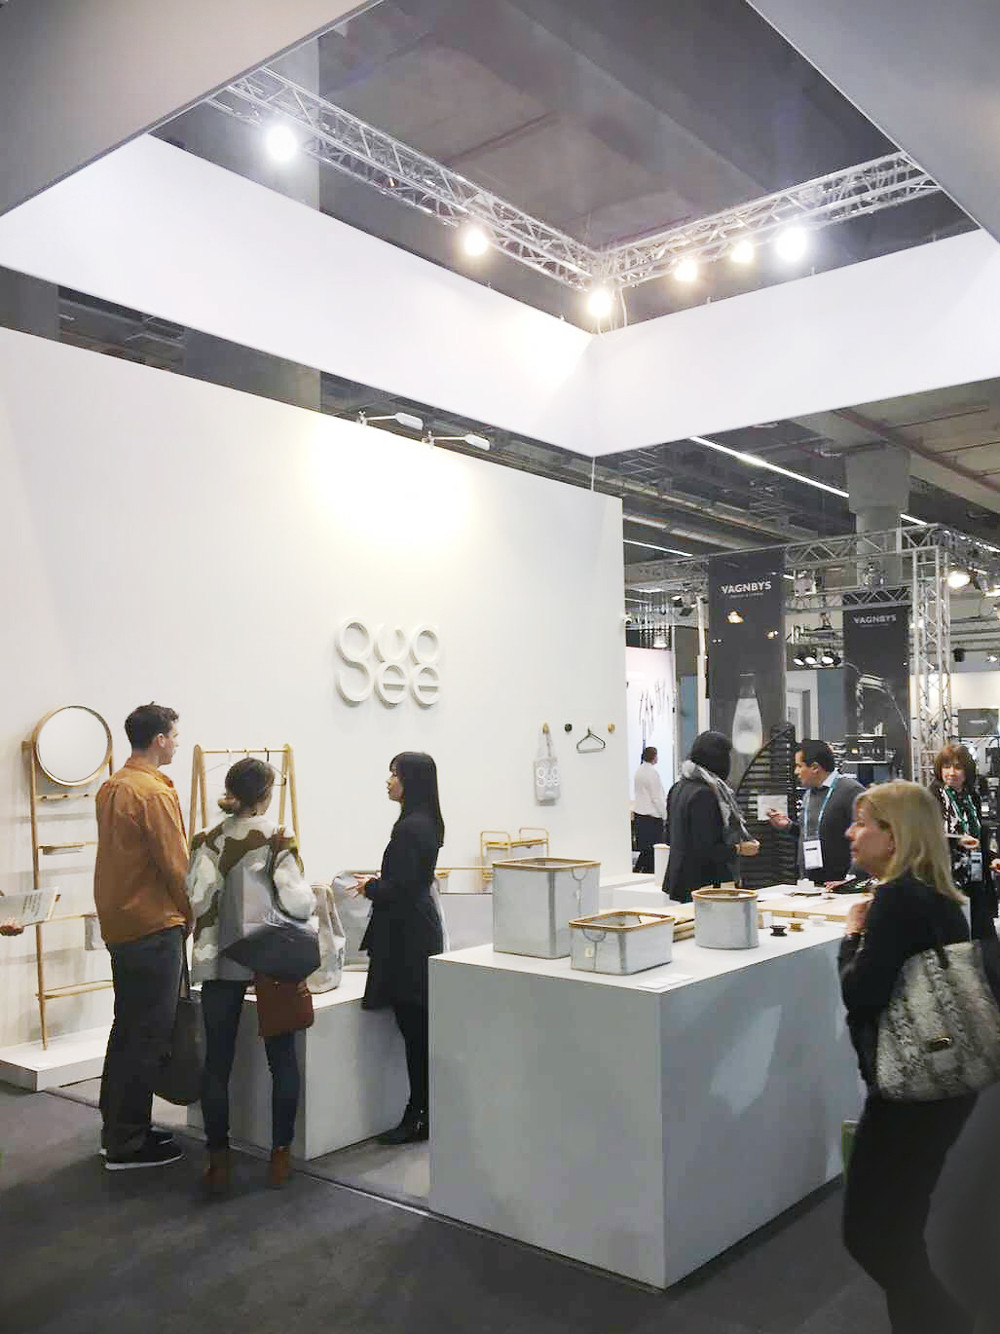 Gudee Blog-exhibition design visitors-Gudee unveils new collection at Ambiente 2018